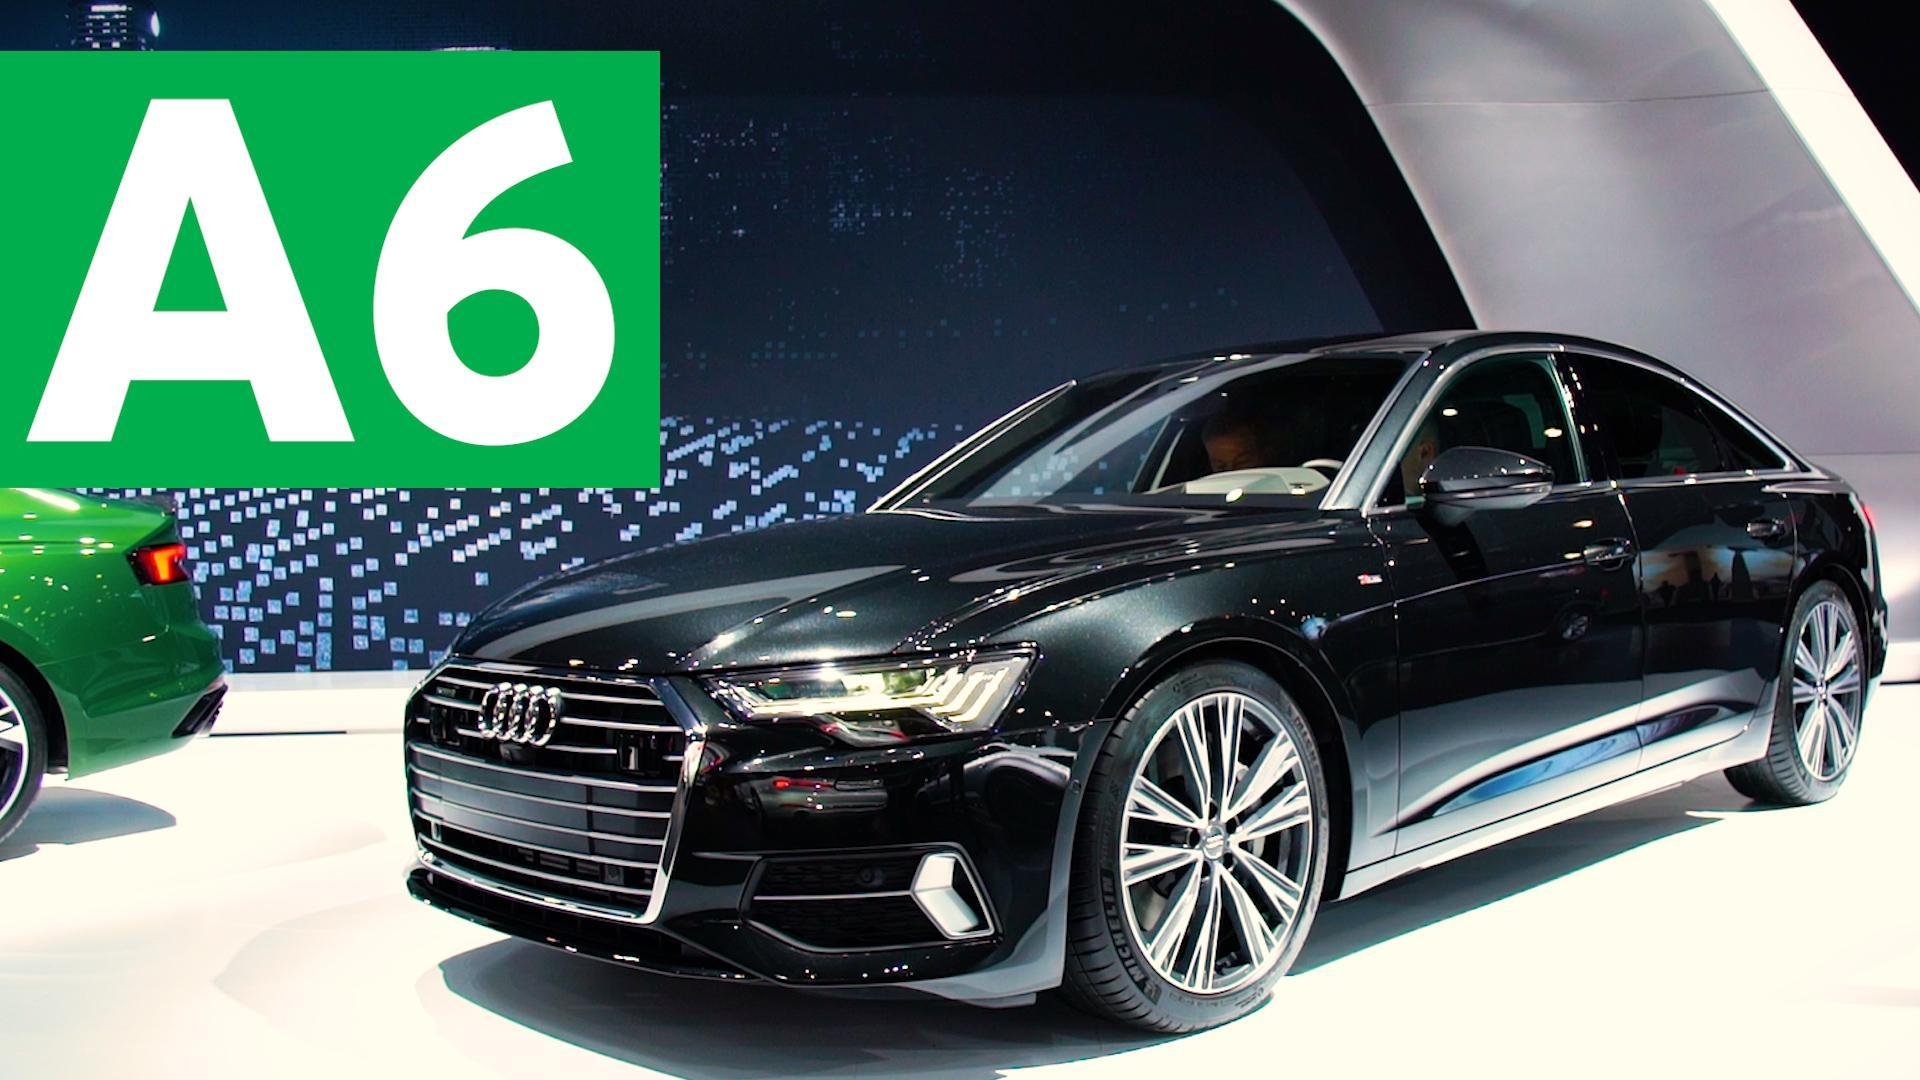 2018 new york auto show 2019 audi a6 video. Black Bedroom Furniture Sets. Home Design Ideas